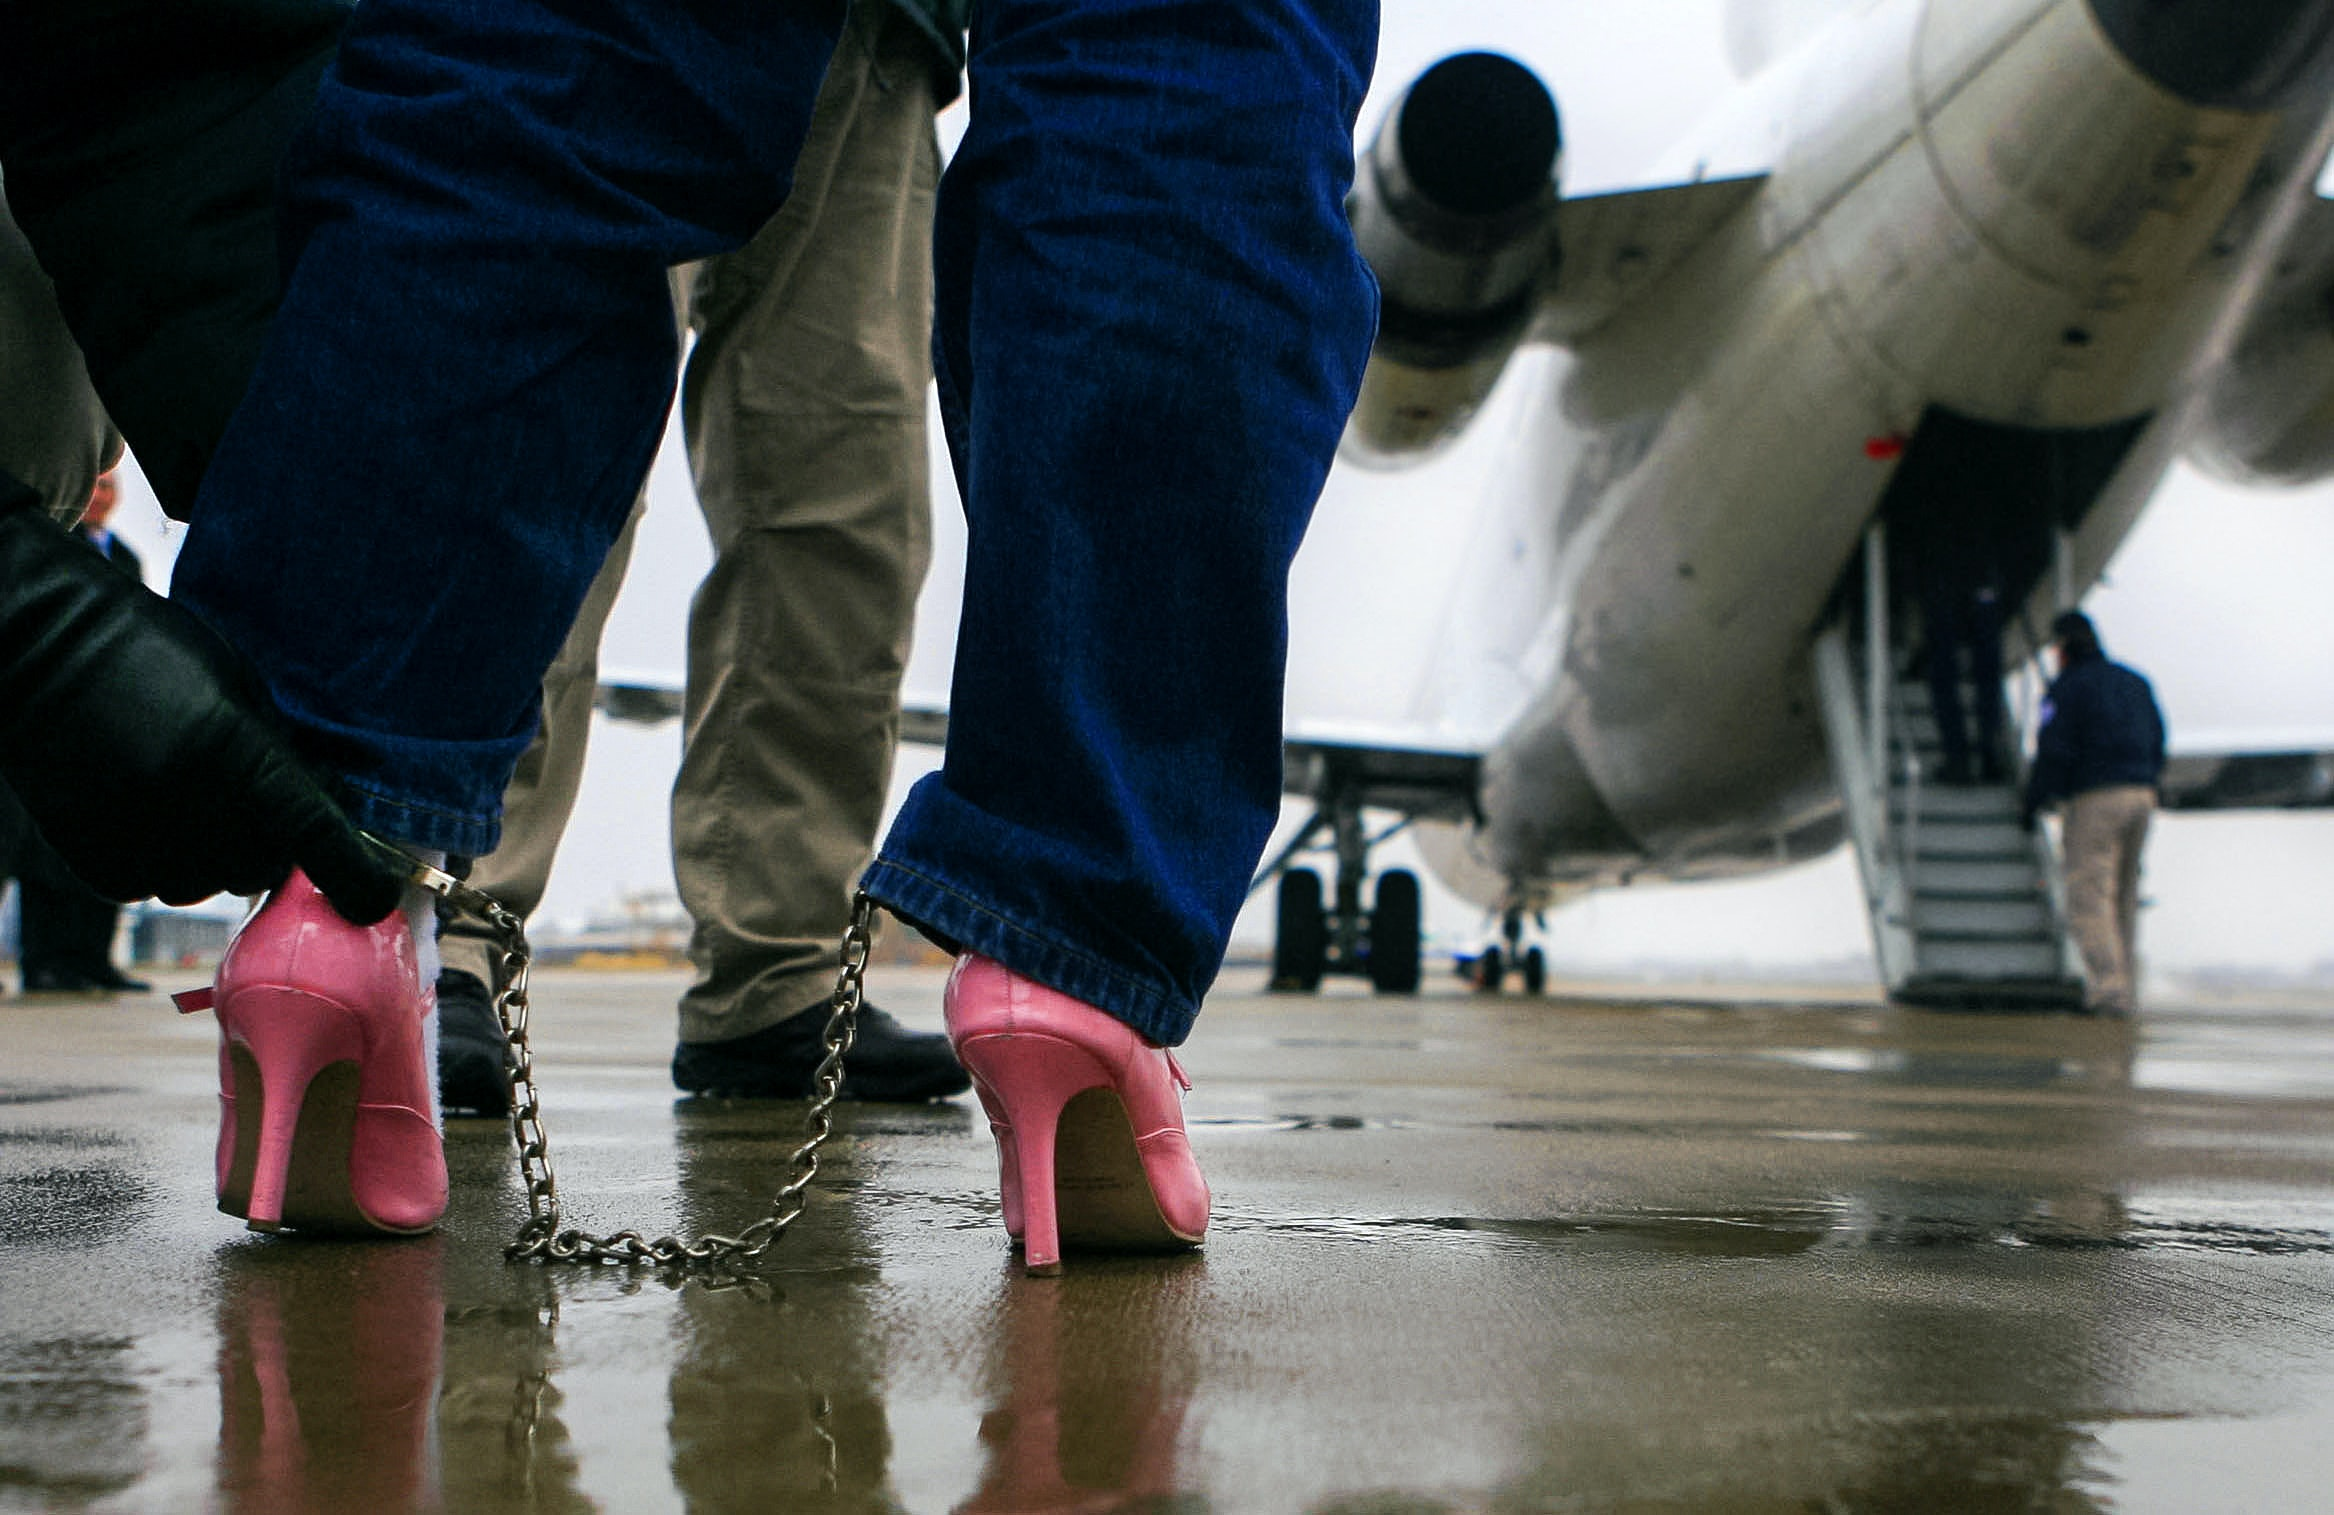 Are planes and high heels